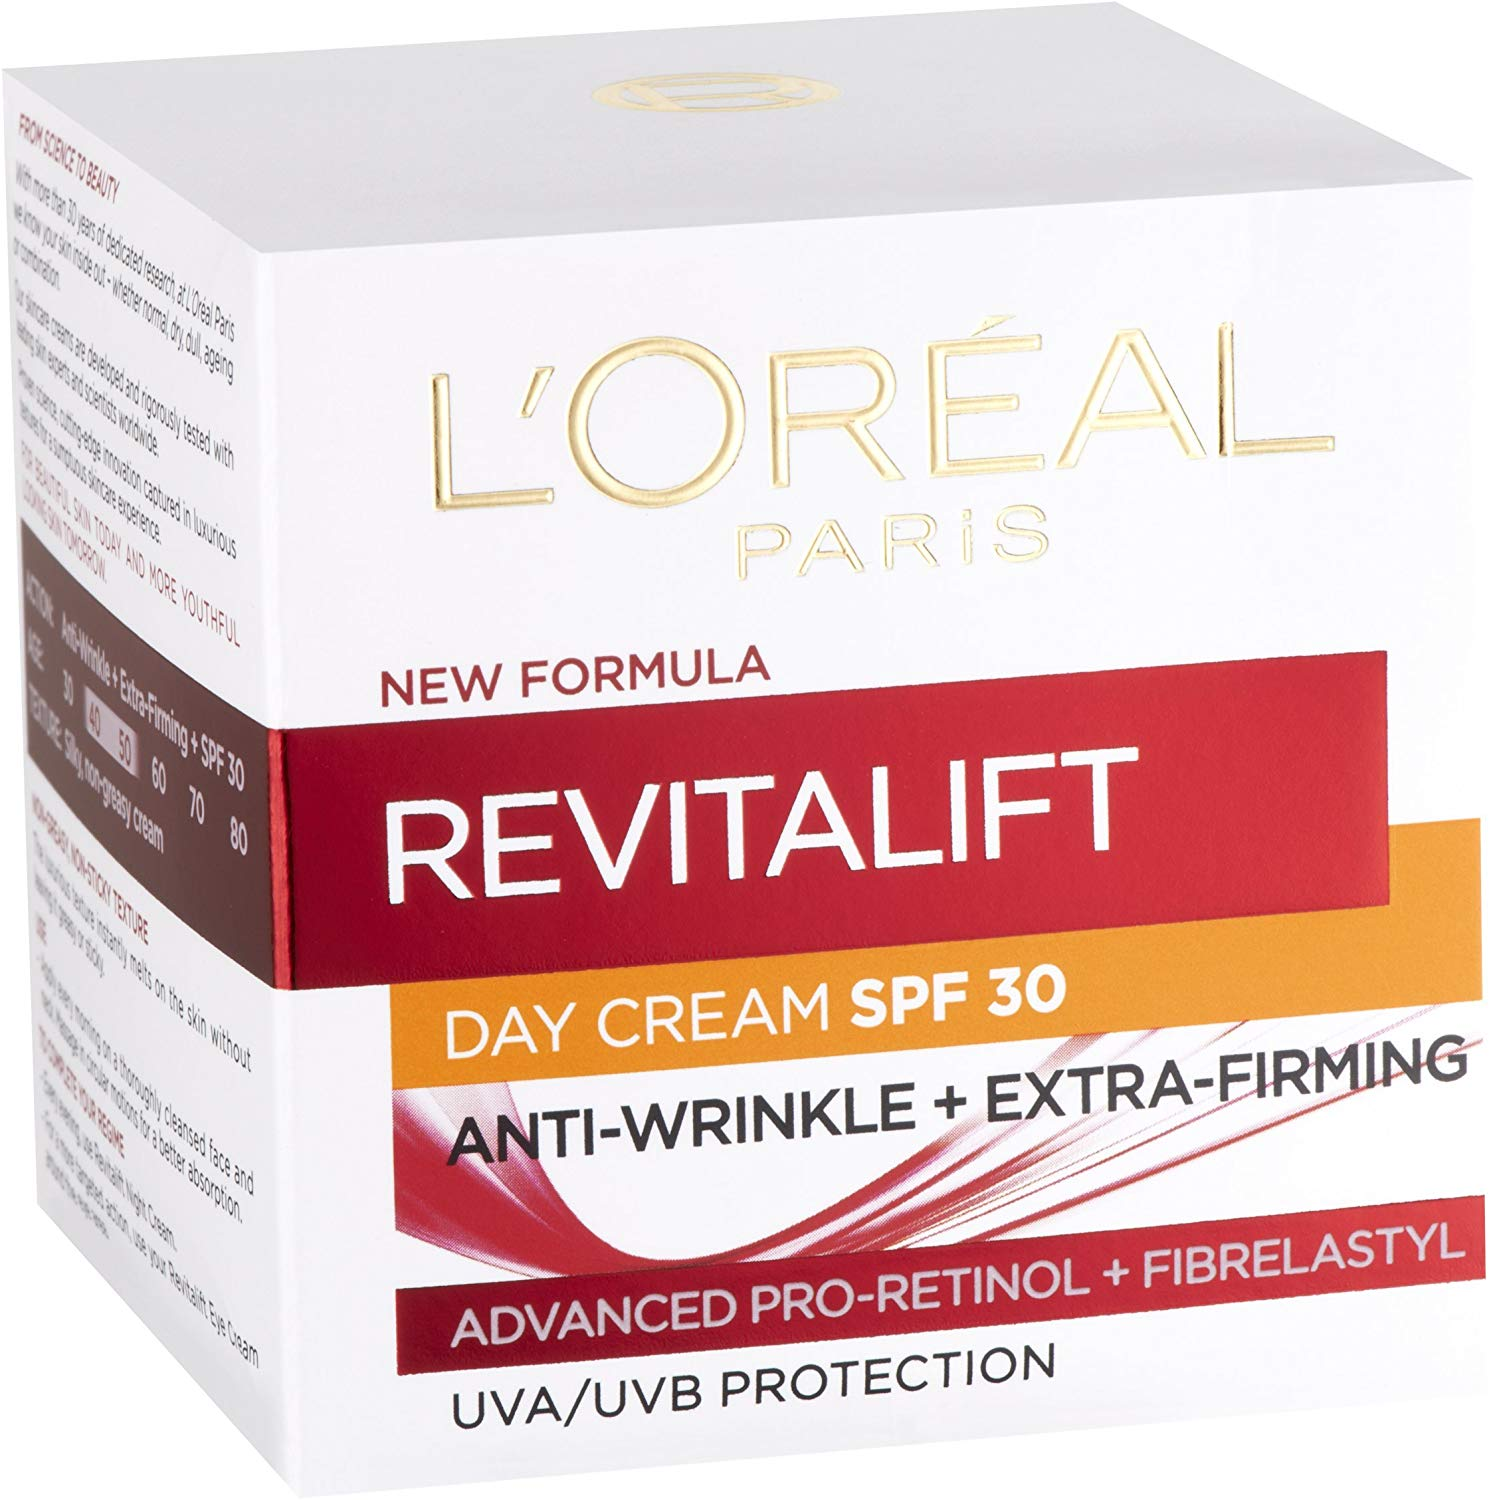 L'Oreal Paris Revitalift Pro Retinol Day Cream SPF 30 Now Only for £4.08 Prime Only